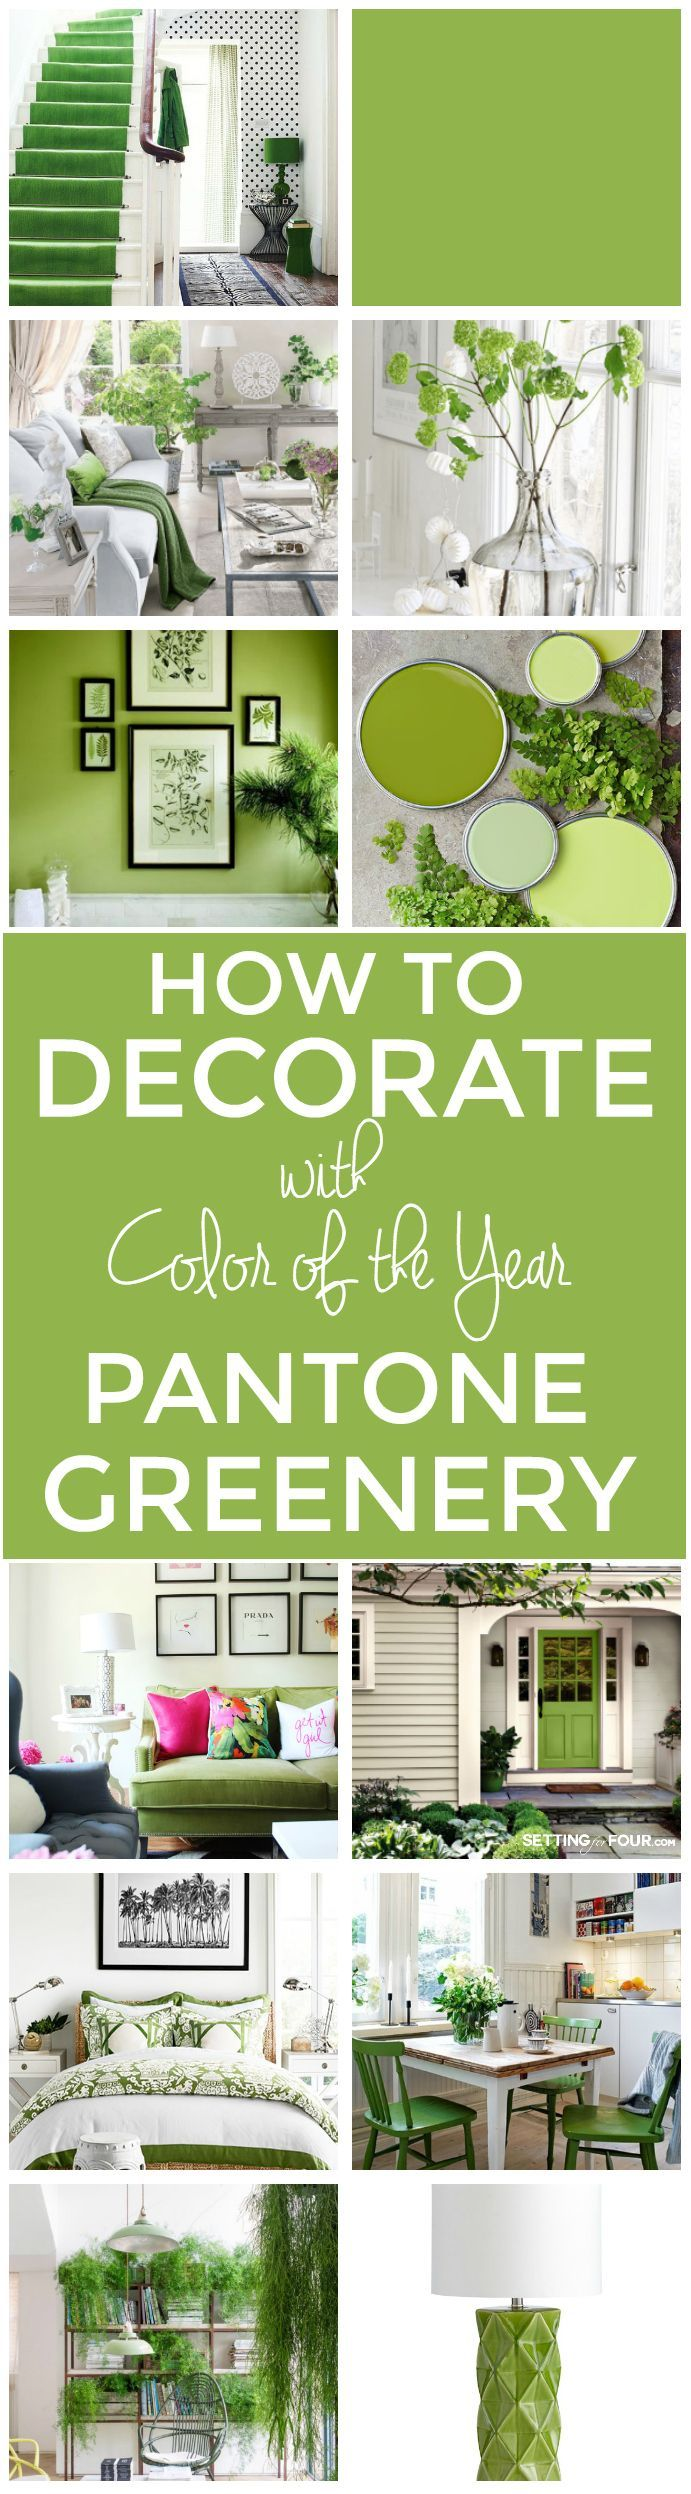 Green paint colors - How To Decorate With Pantone Color Of The Year Greenery Green Paint